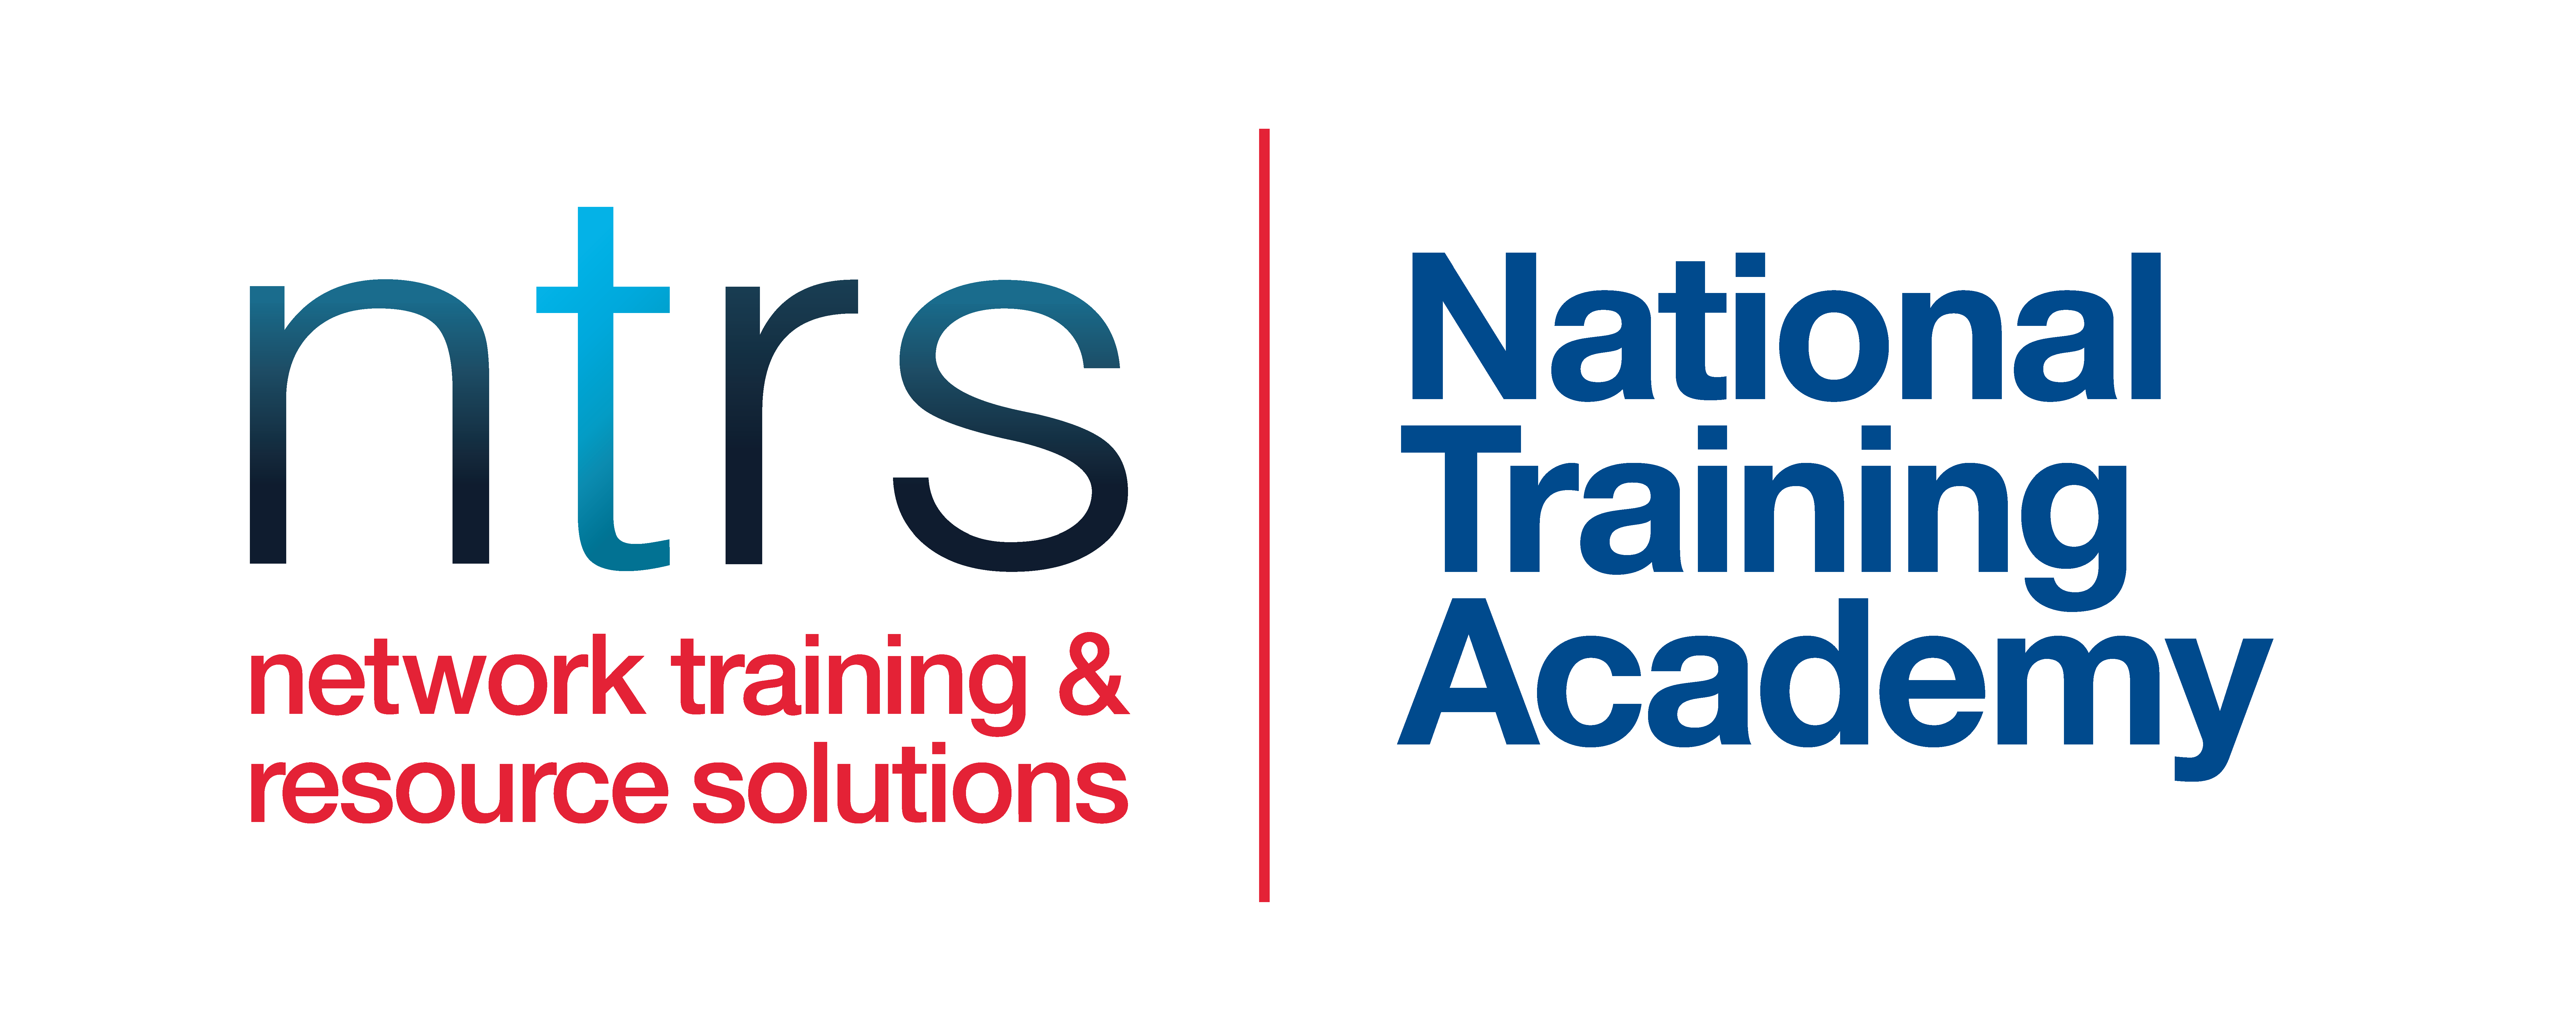 Network Training & Resource Solutions (ntrs)